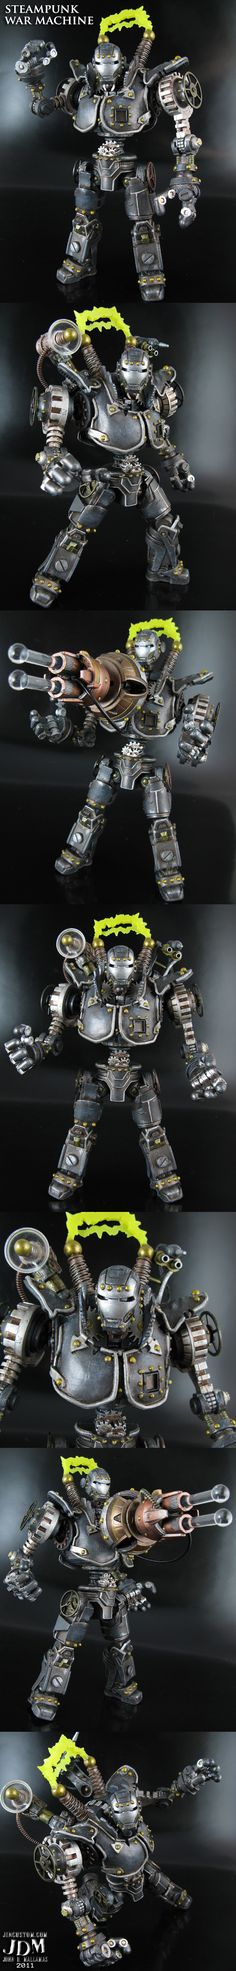 Steampunk War Machine by Jin Saotome